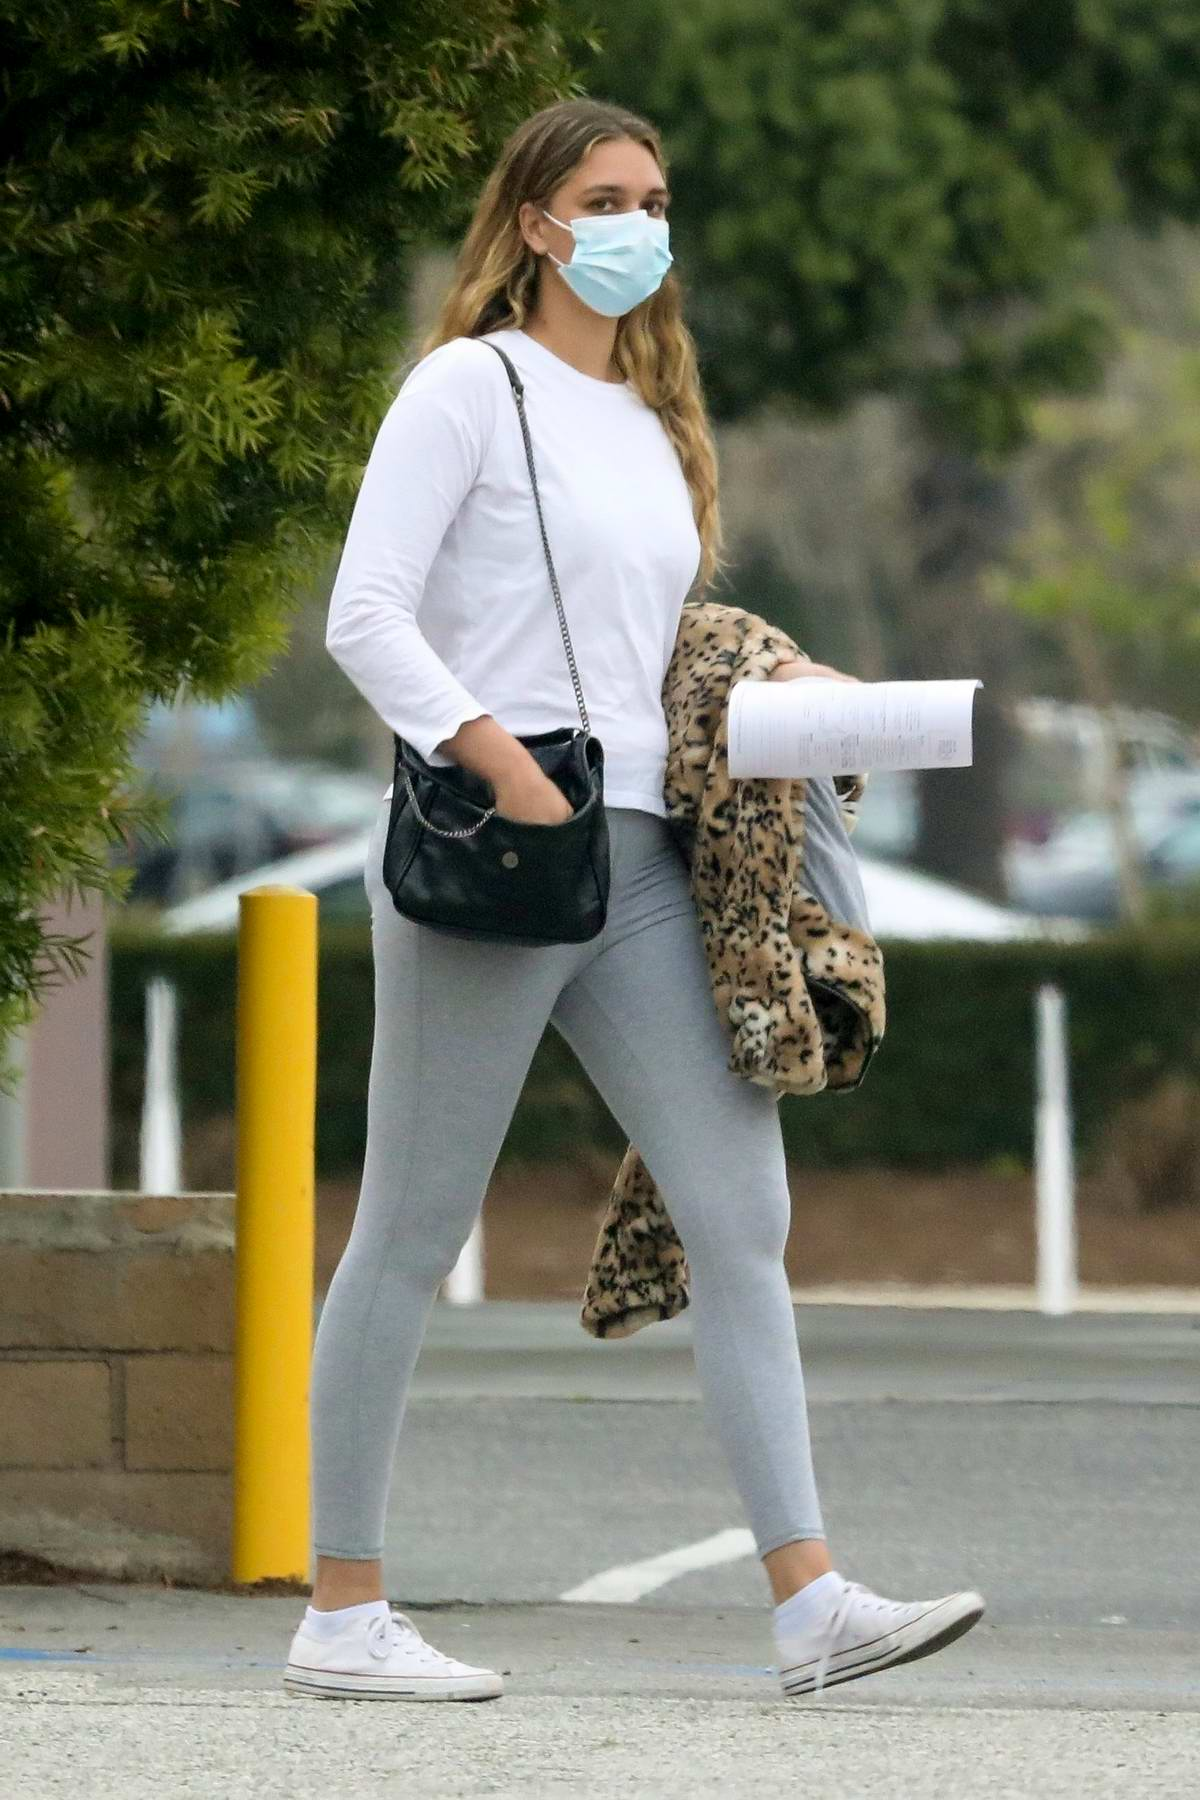 April Love Geary sports a white shirt, grey leggings and a mask as she leaves the Urgent Care in Malibu, California